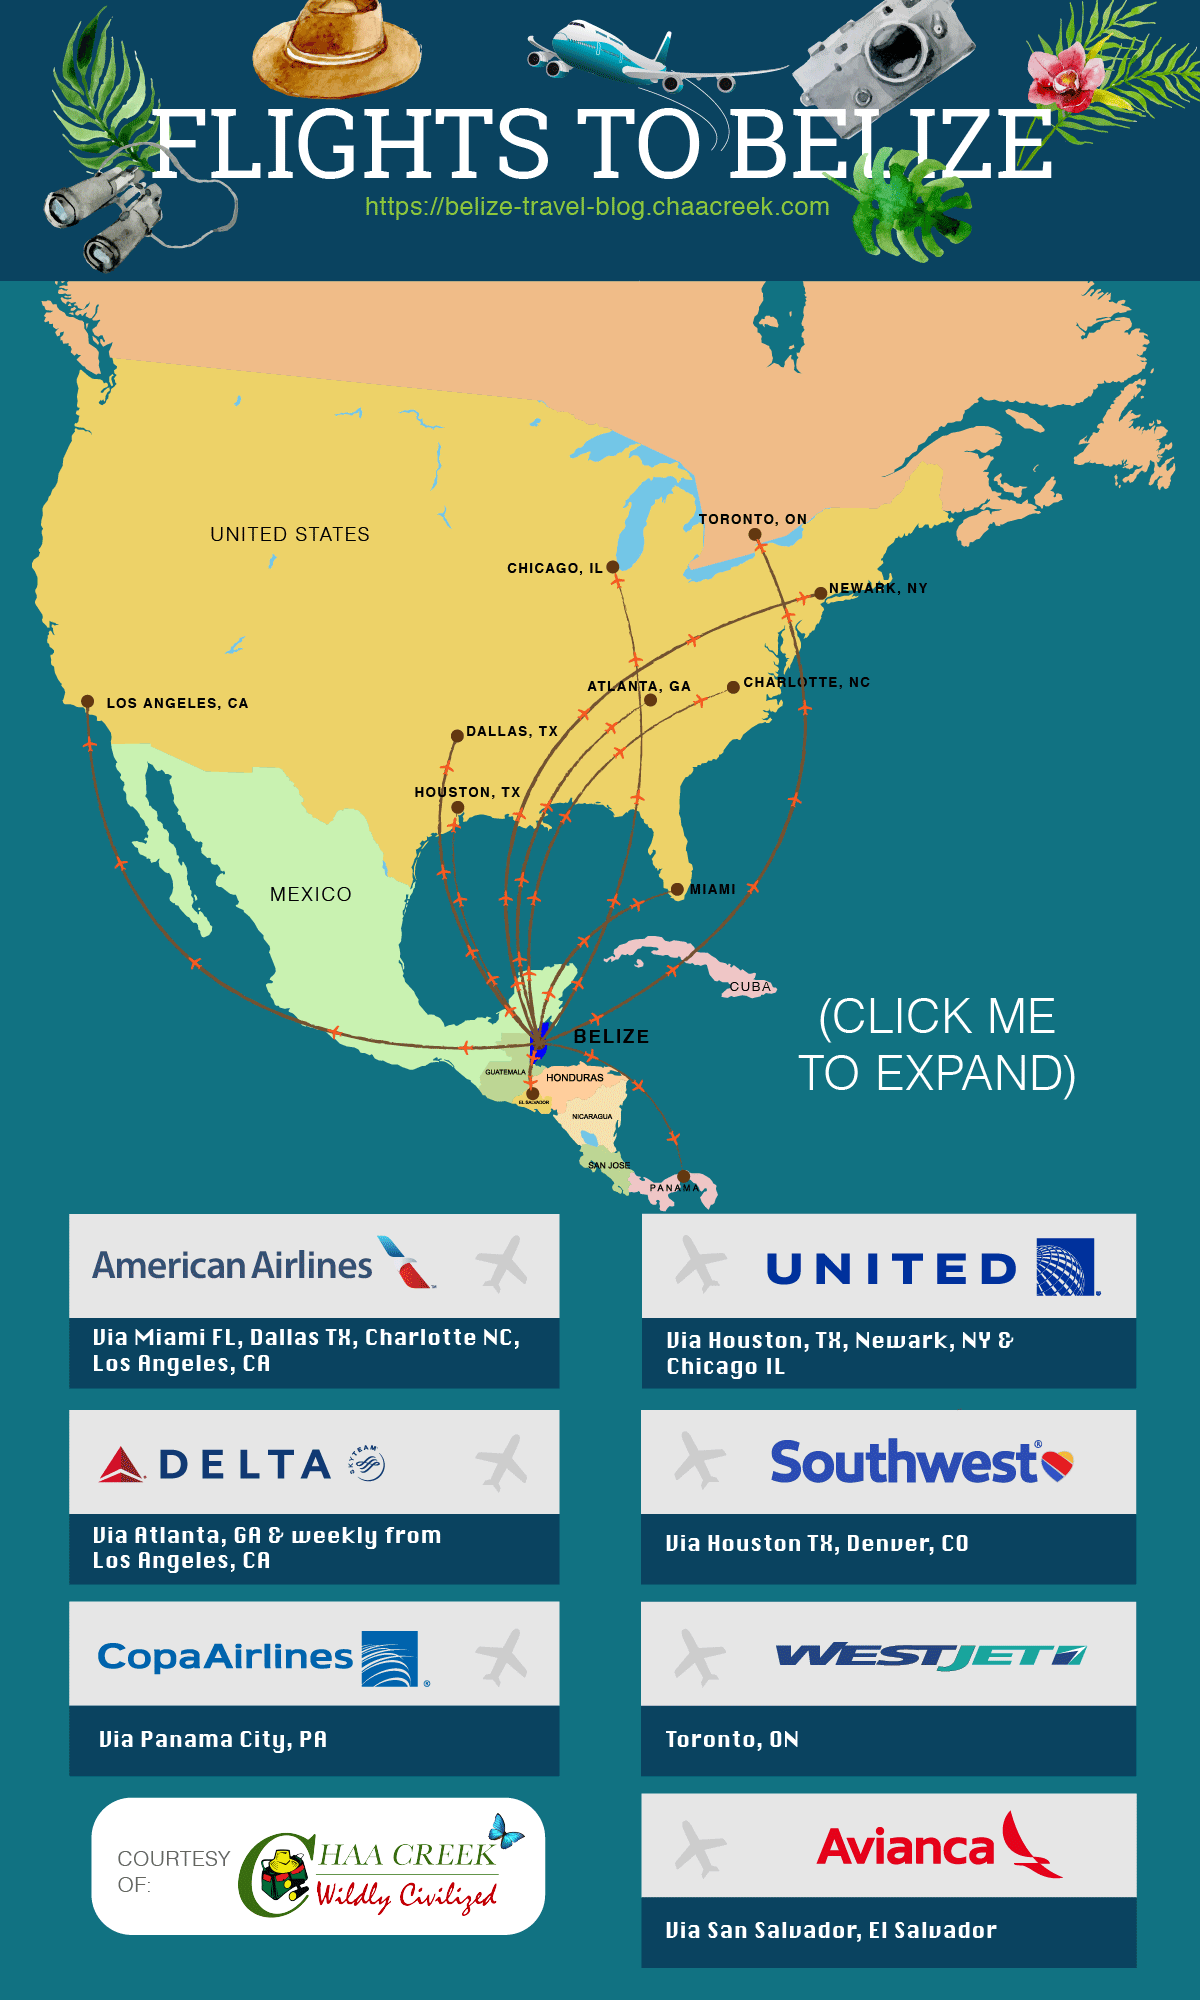 flights_to_belize_infographic_schedule_travel_guide_chaa_creek_expand